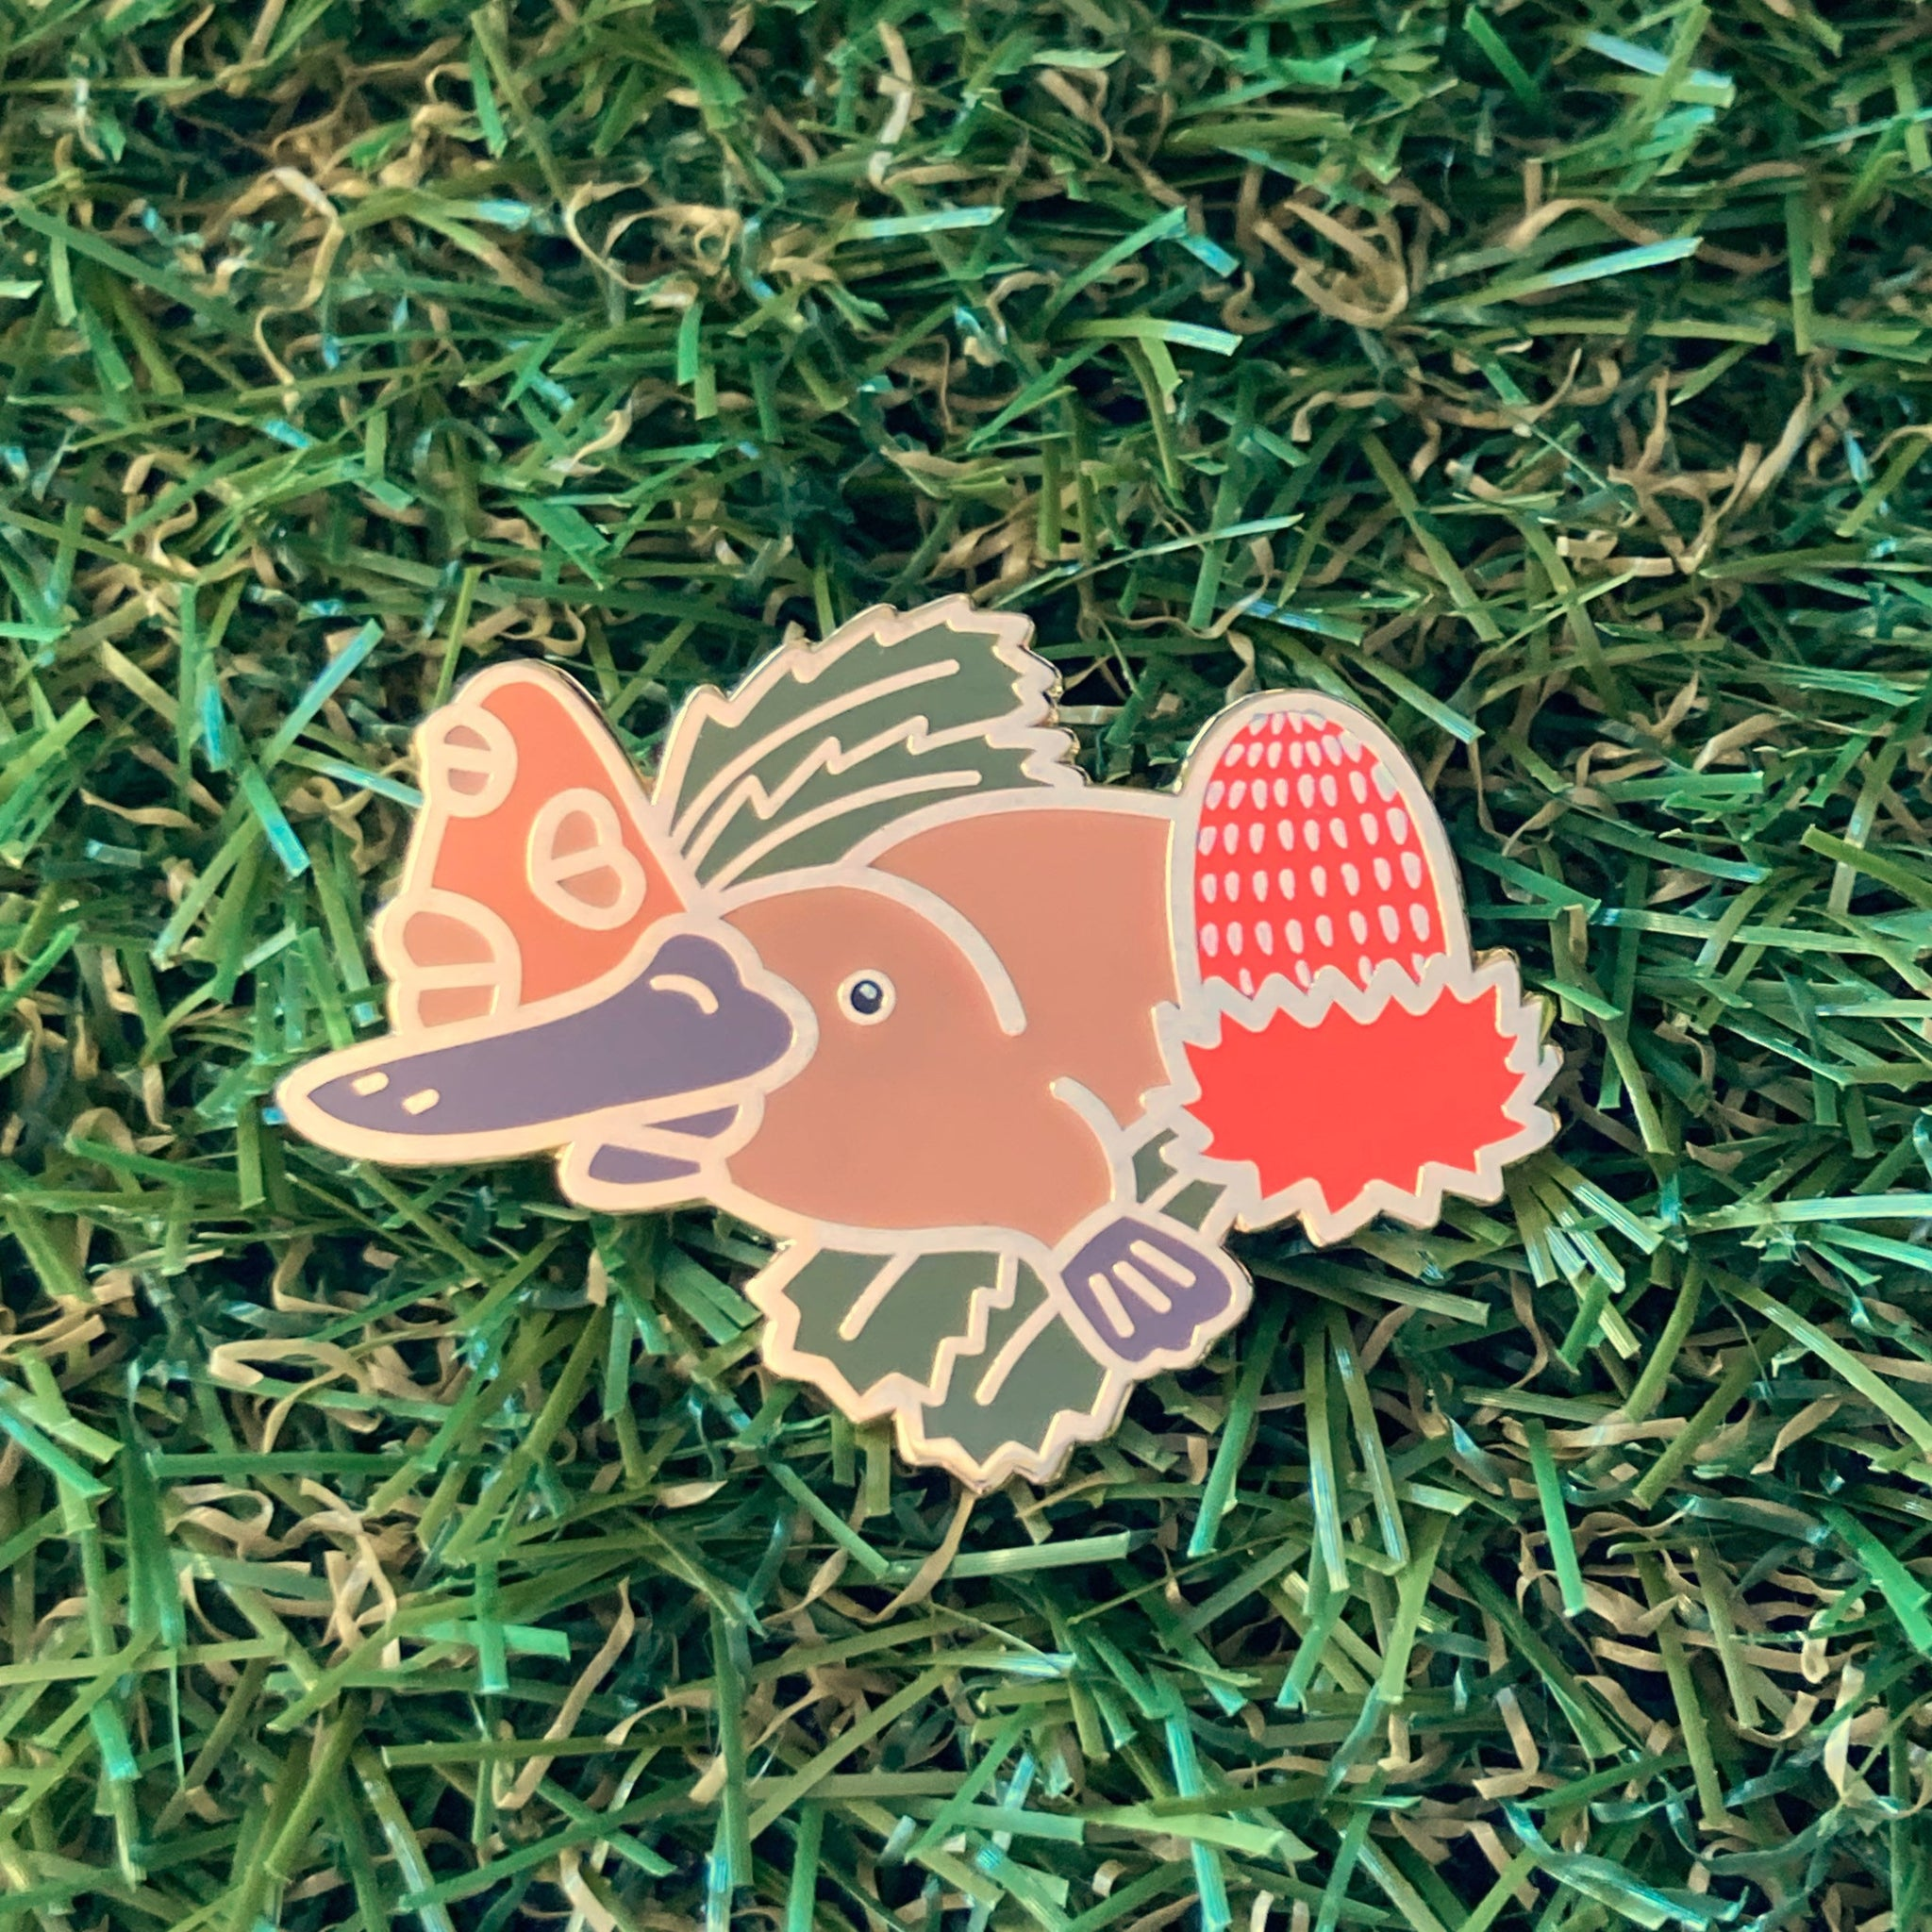 Platypus and Banksia 40mm Hard Enamel Pin - Australian Friends and Flowers - Aussie Animals - Lapel Pin, Cloissone Badge